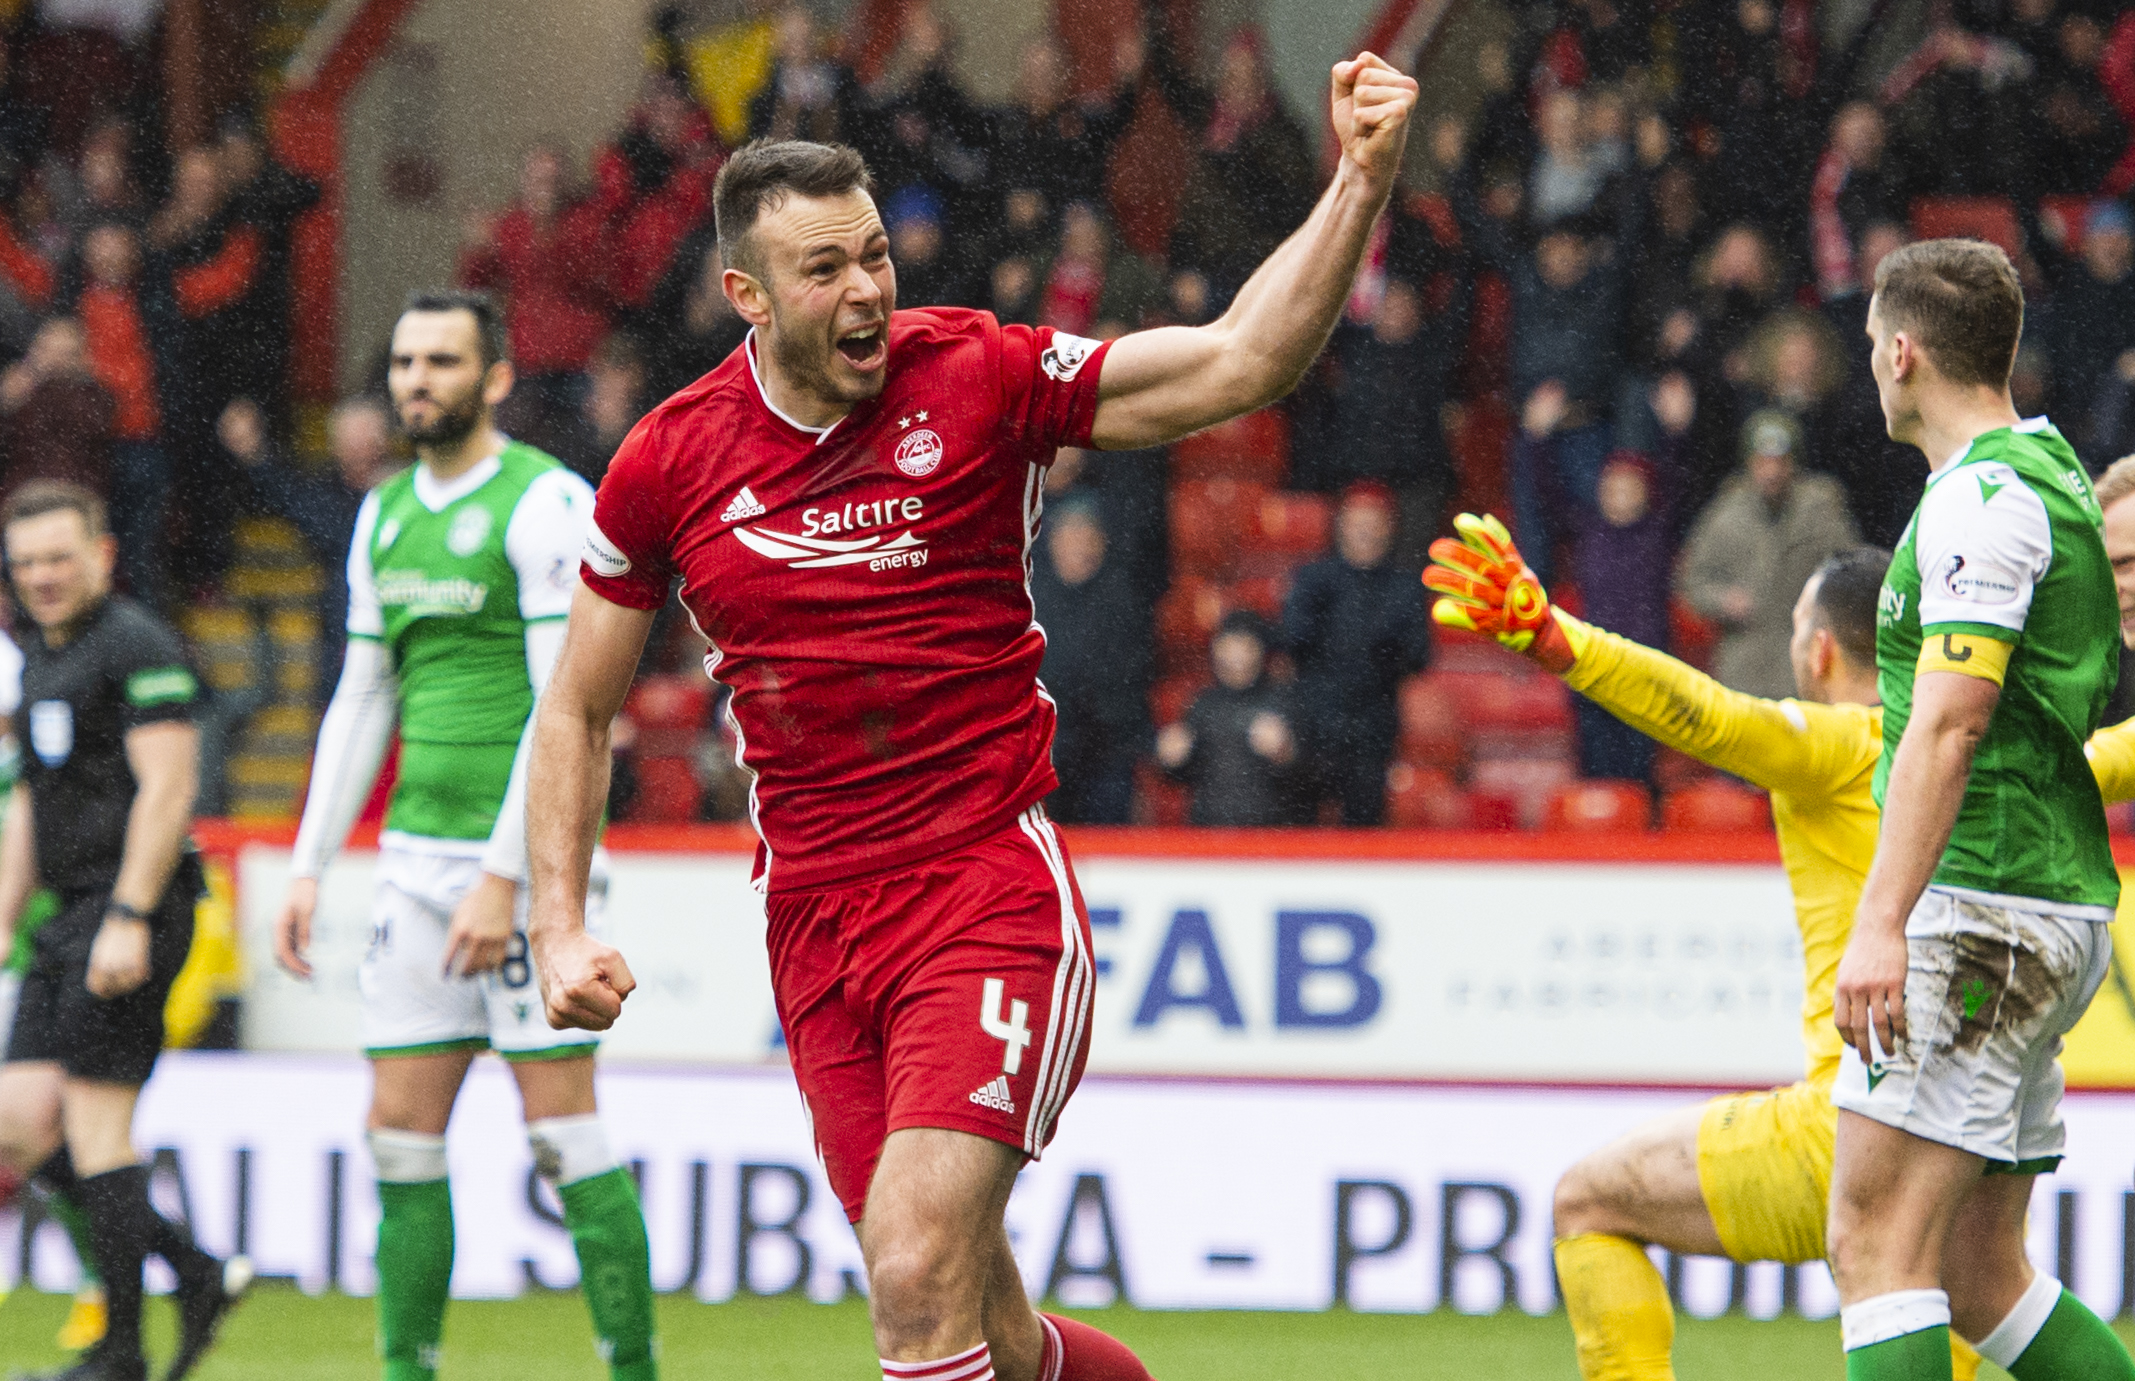 Scottish football has been built on the backs of players like Considine.